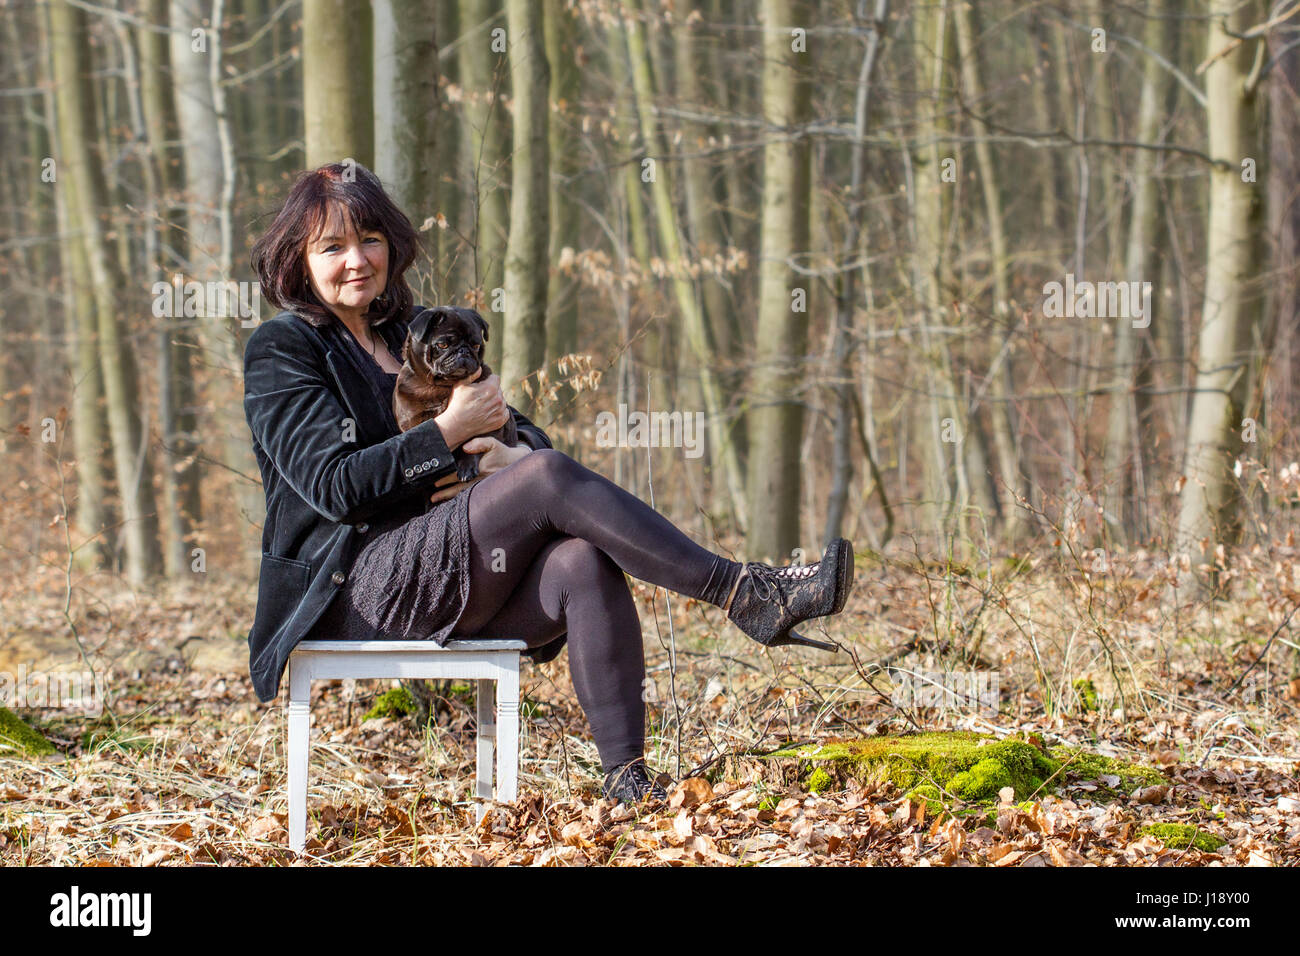 A woman in black clothes with a cute, black pug on a white chair - Stock Image